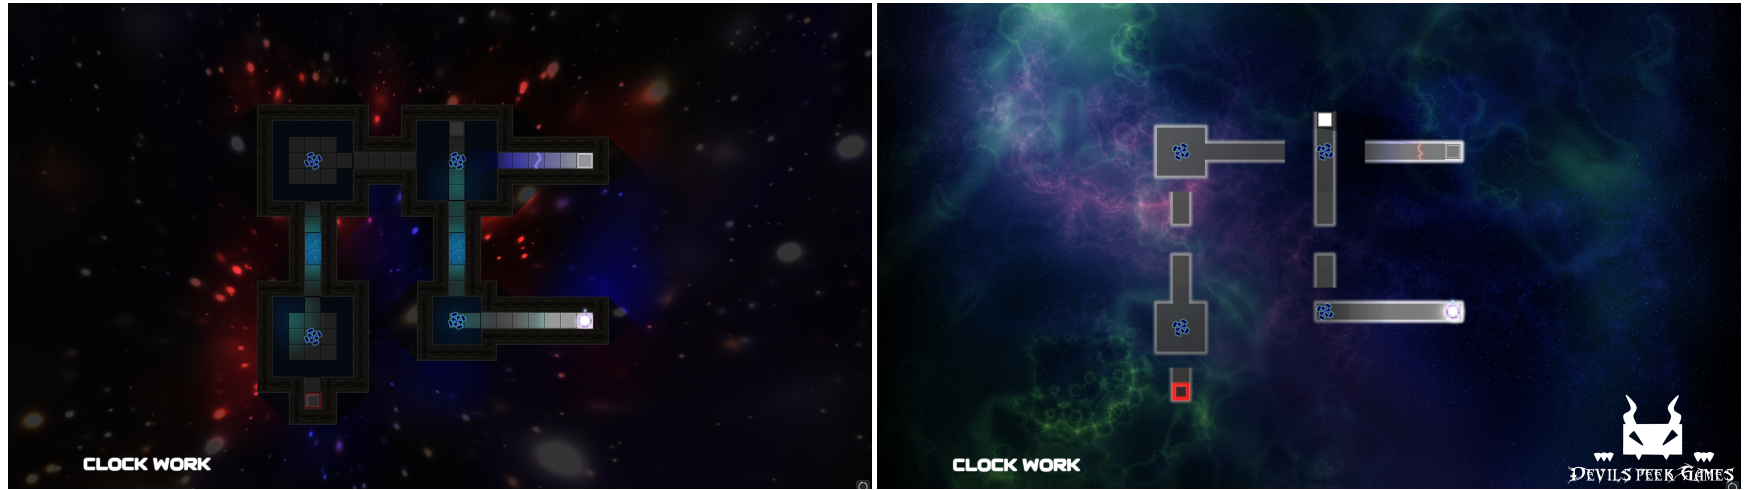 Demo Level Clockwork - Before and After